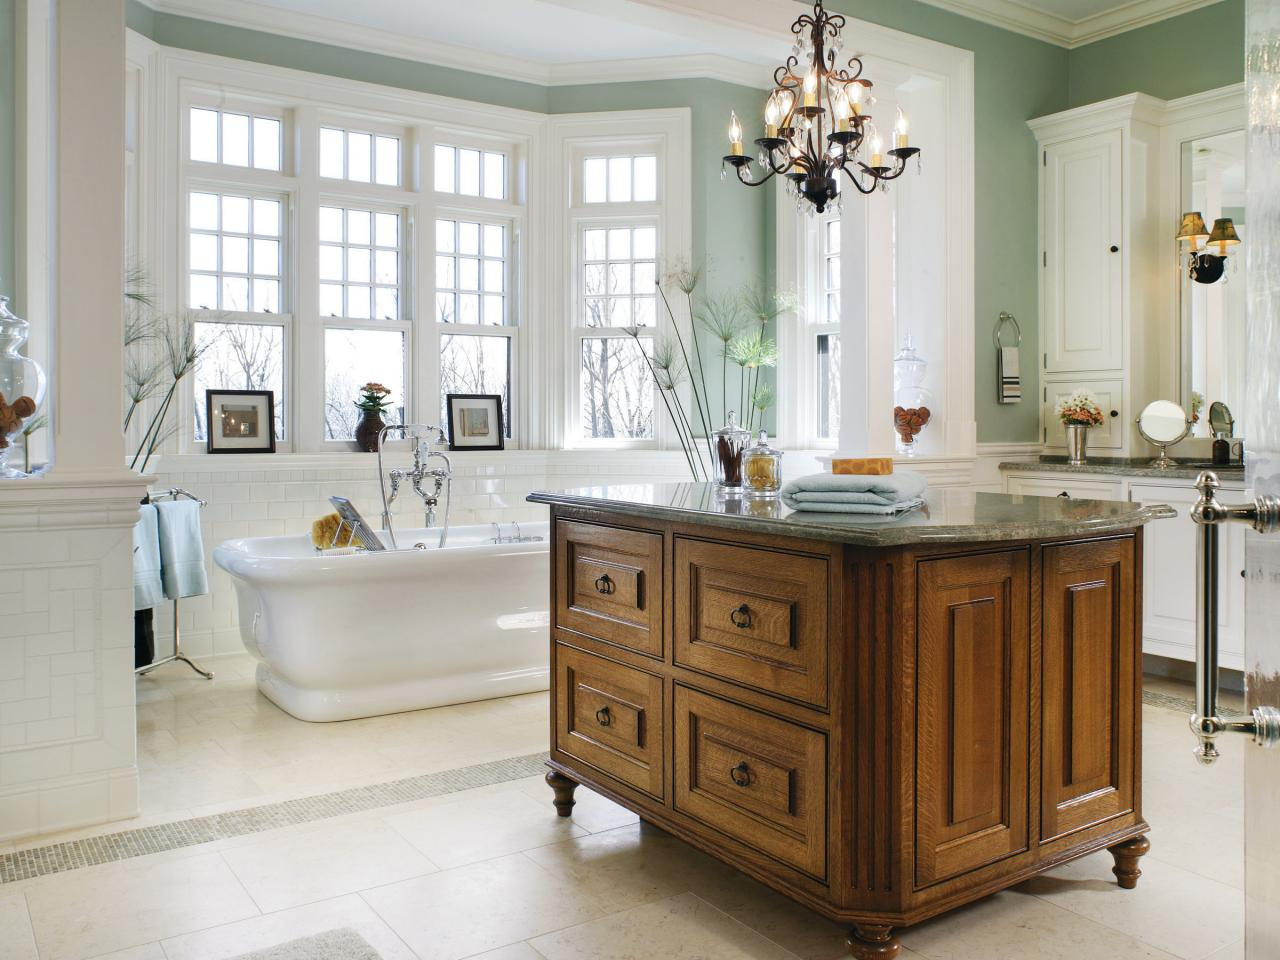 DP_Salerno-Traditional-Bathrooms_s4x3.jpg.rend.hgtvcom.1280.960